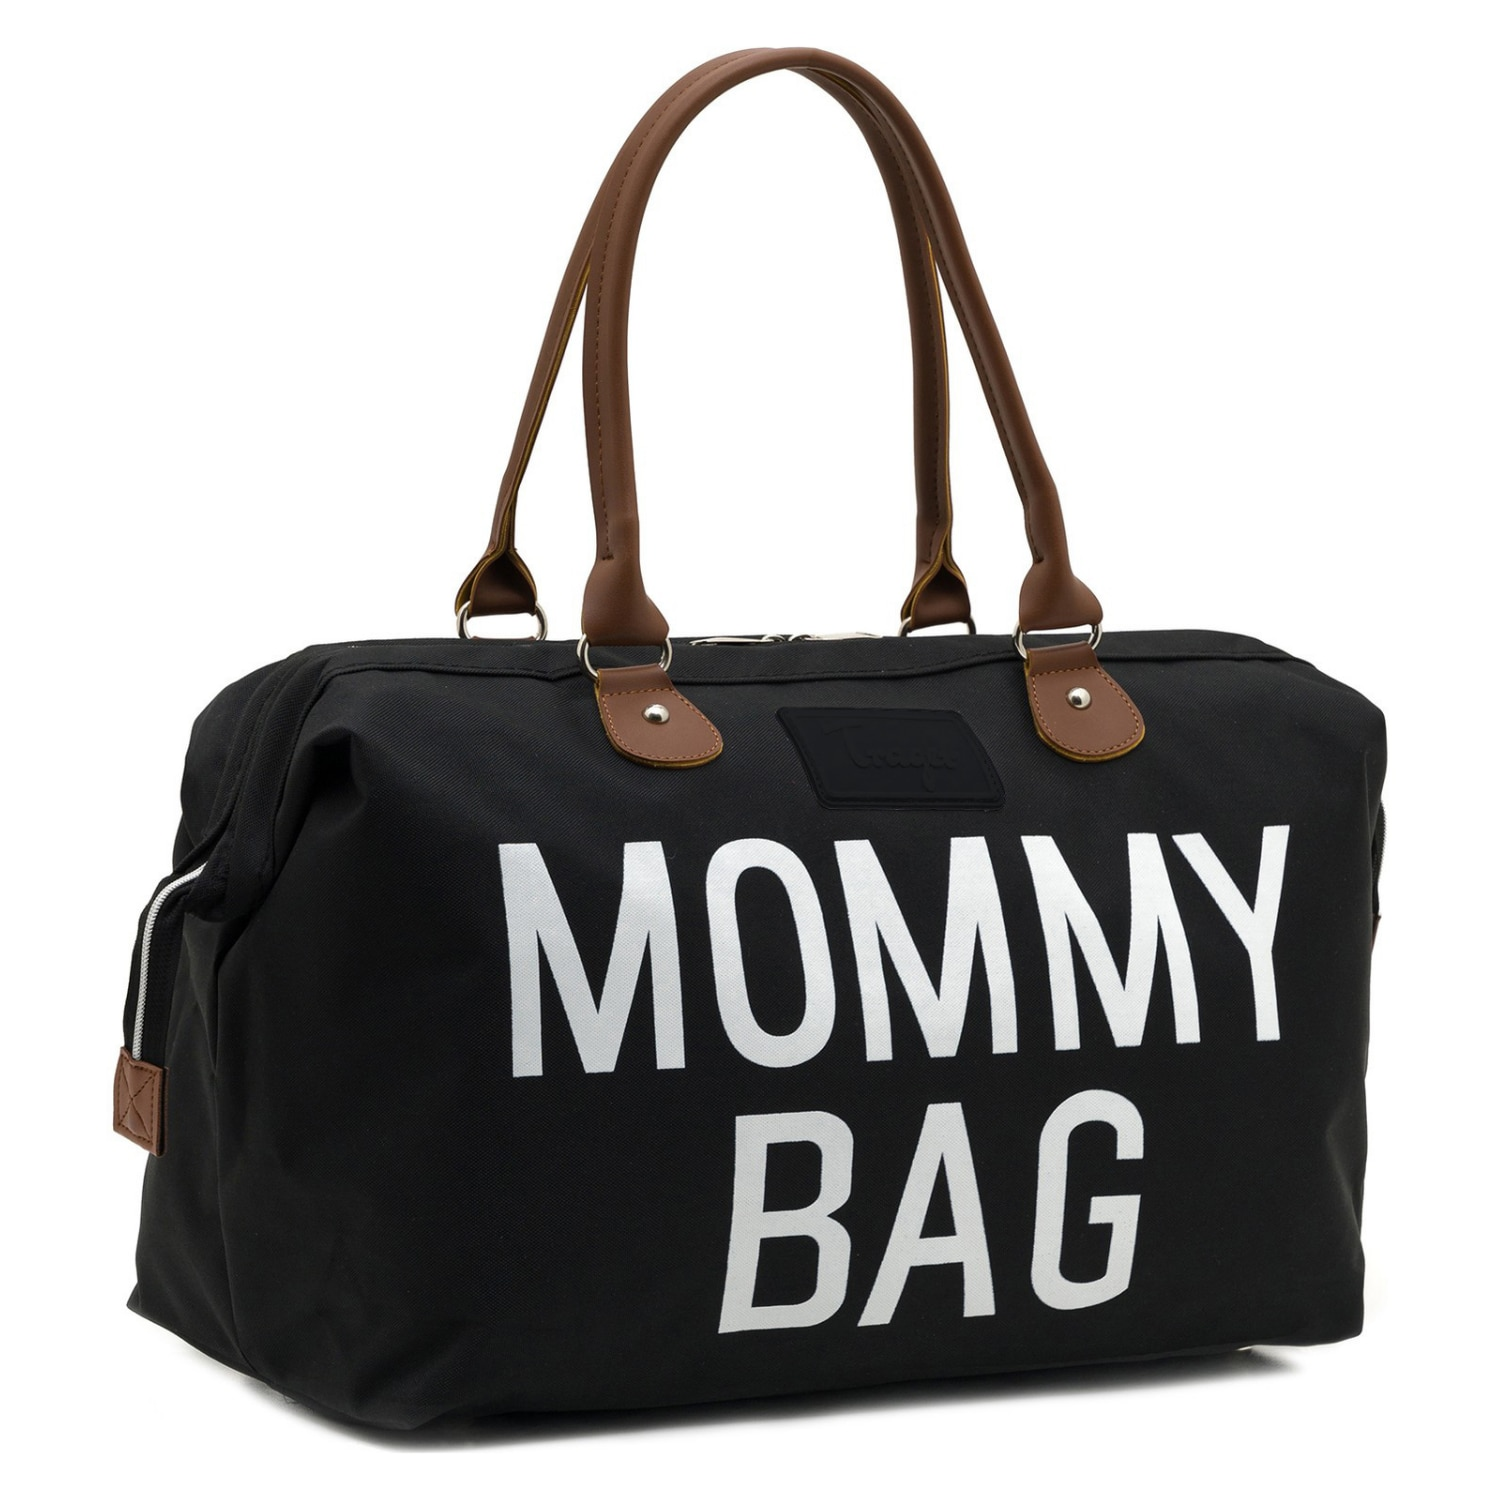 2021 Baby Tote Bag For Mothers Nappy Maternity Diaper Mommy Bag Storage Organizer Changing Carriage Baby Care Travel Backpack